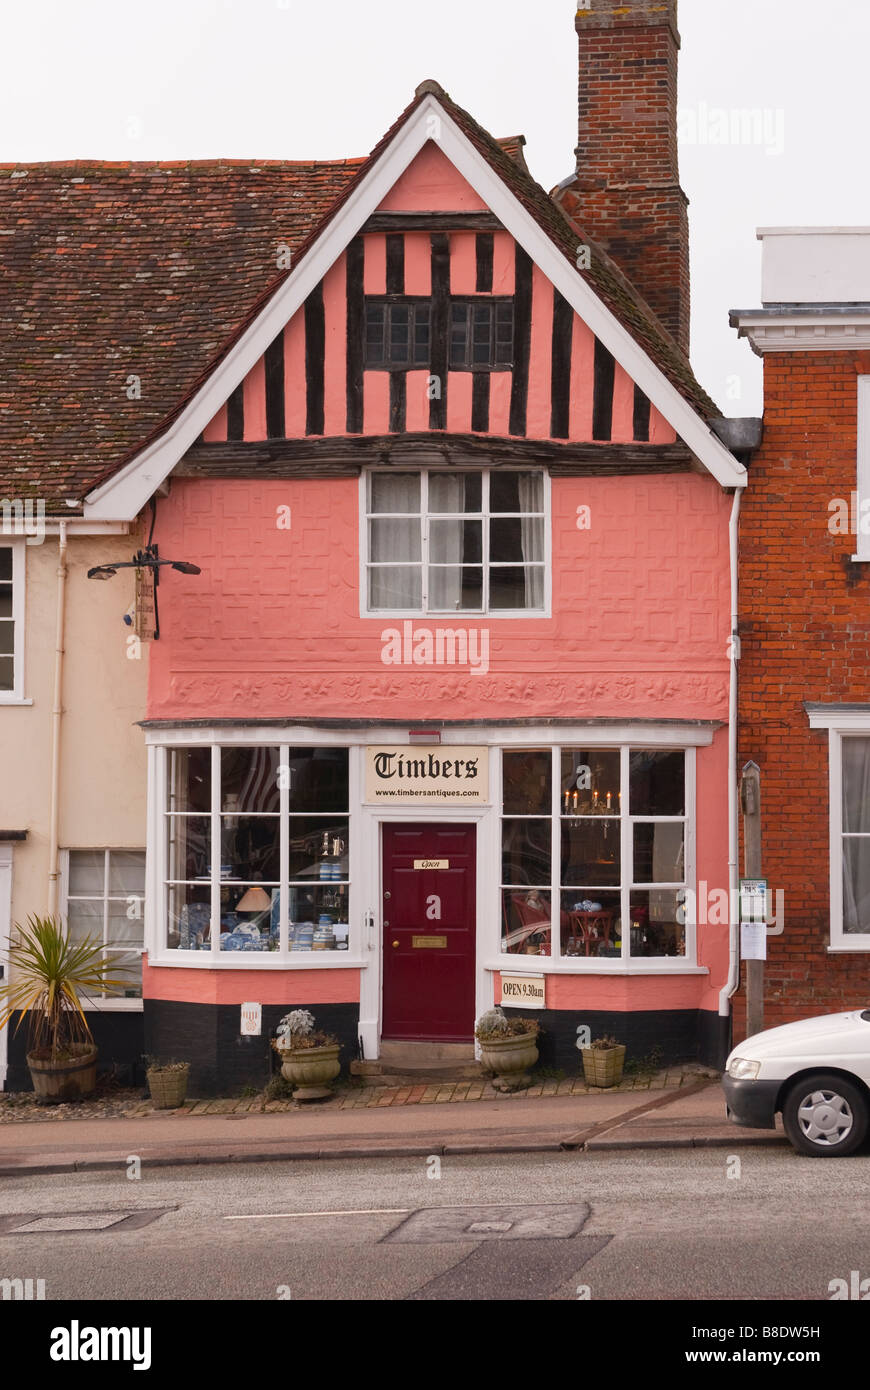 Timbers Antique Shop Store In Lavenham Suffolk Uk Selling Antiques